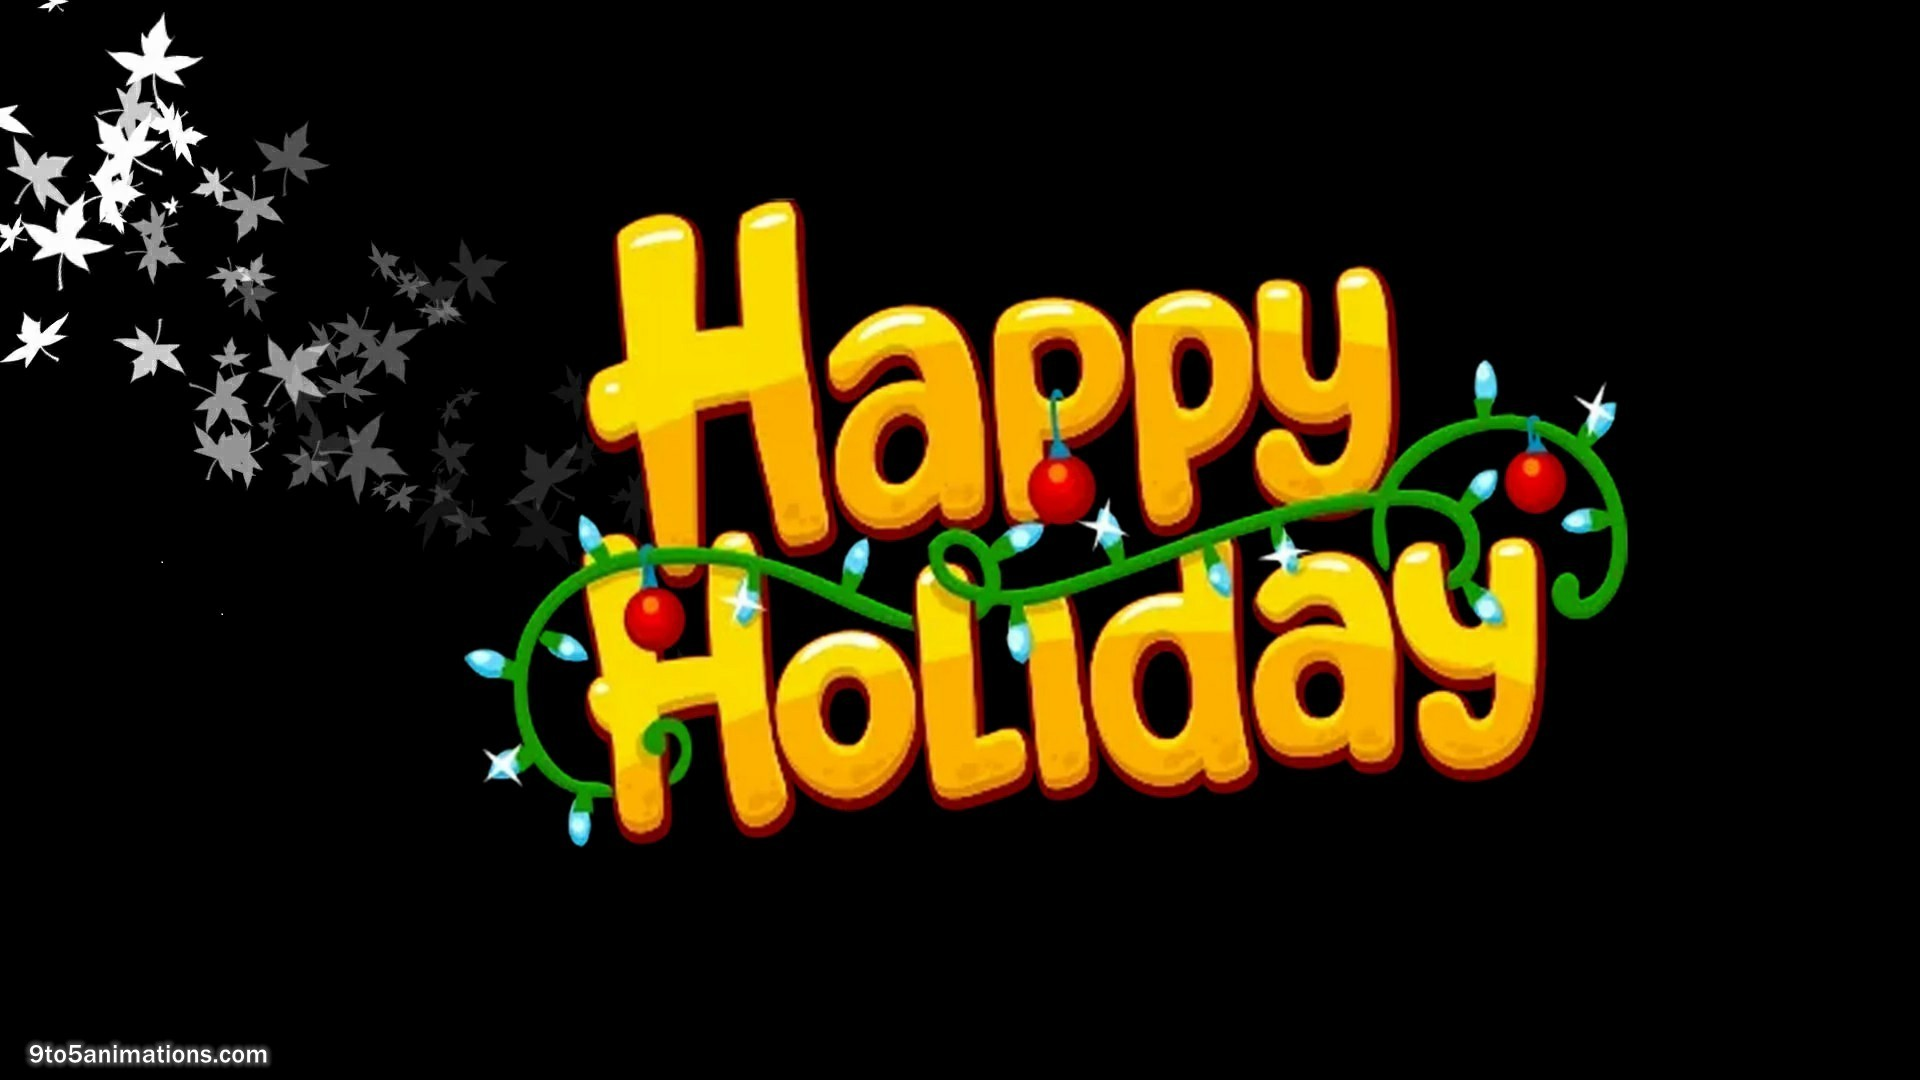 Res: 1920x1080, Happy holiday black background hd wallpaper free